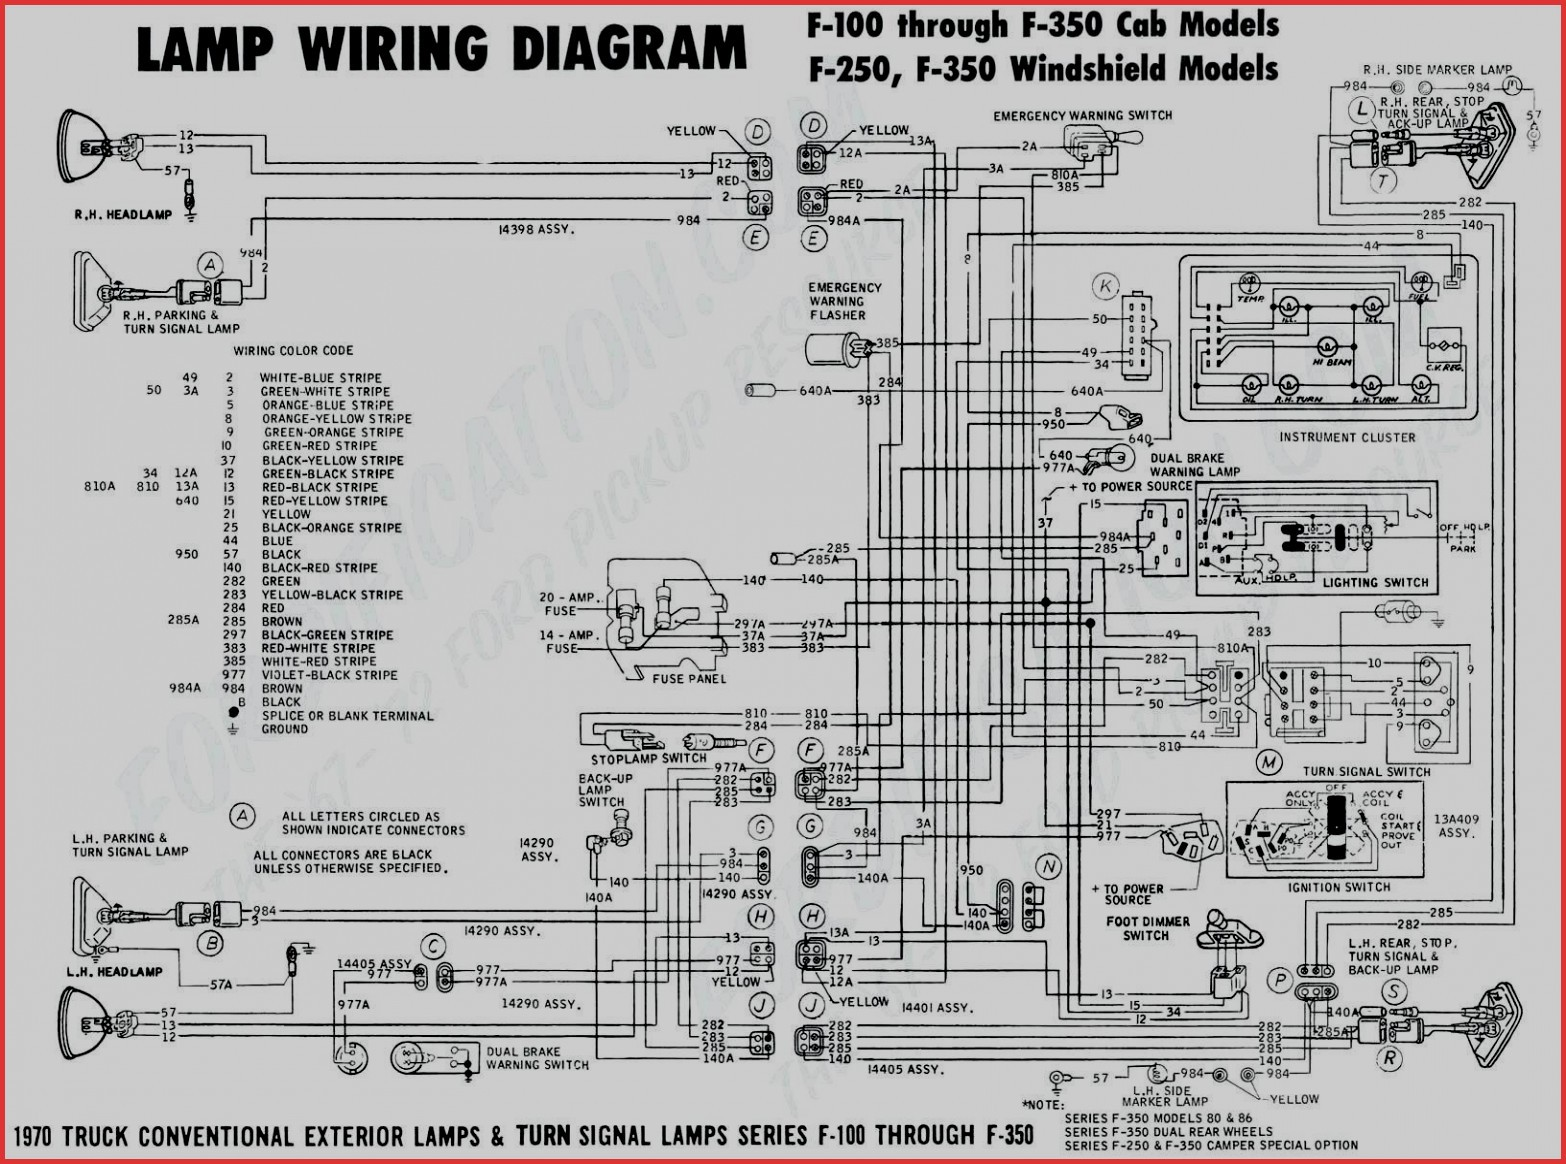 Vdo Temperature Gauge Wiring Diagram Vdo Tach Wiring Diagram Small Vdo Gauge Wiring Diagram Schematic